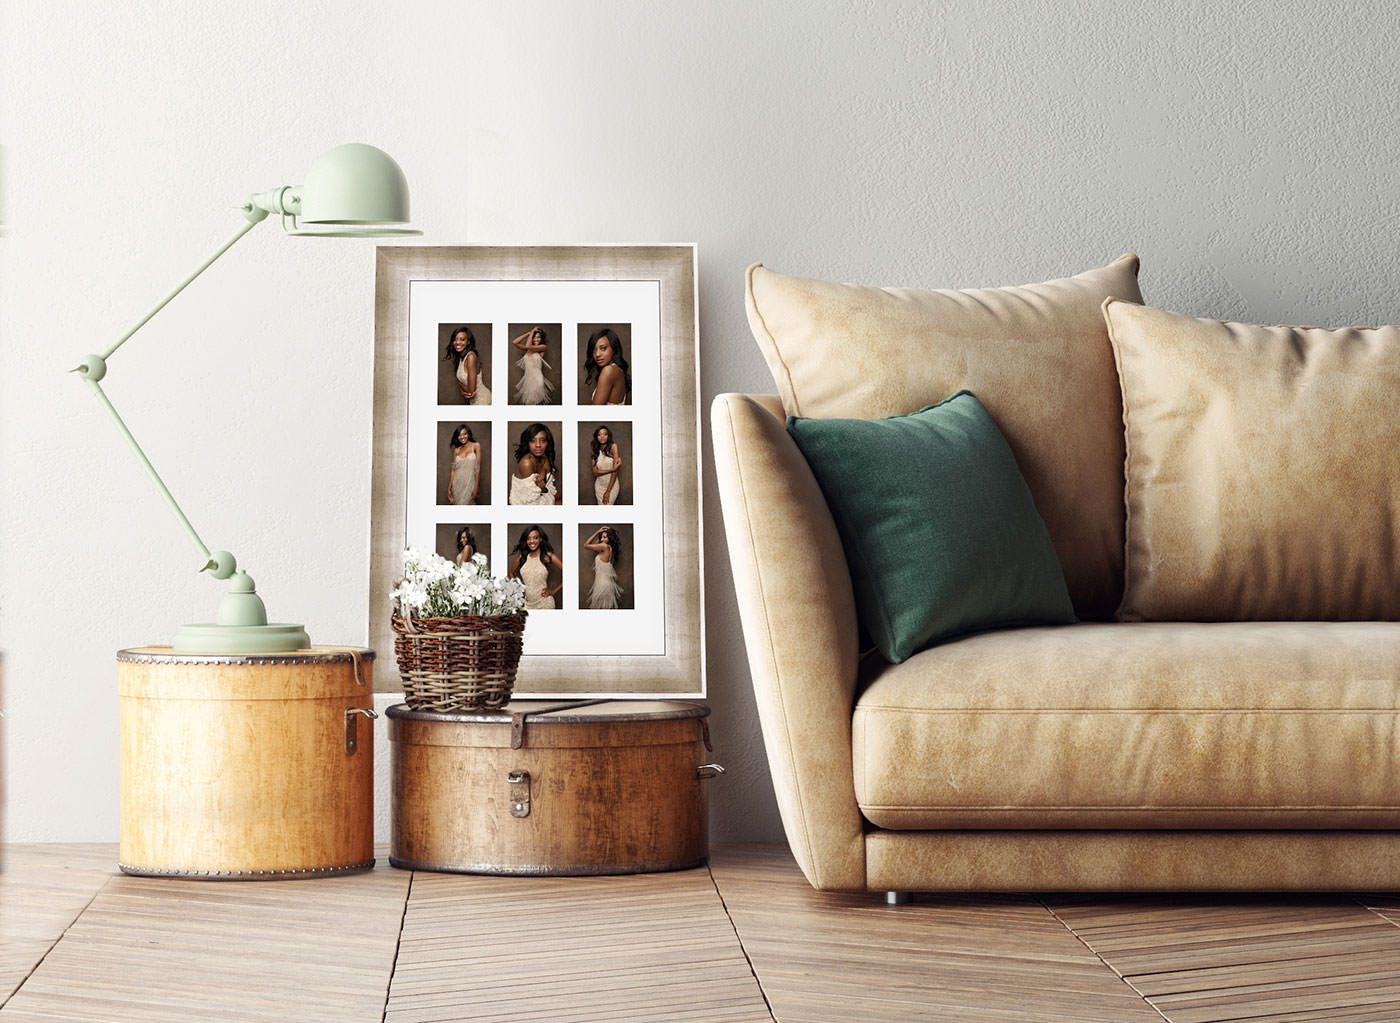 a framed 9 image composite beside a couch and end table.